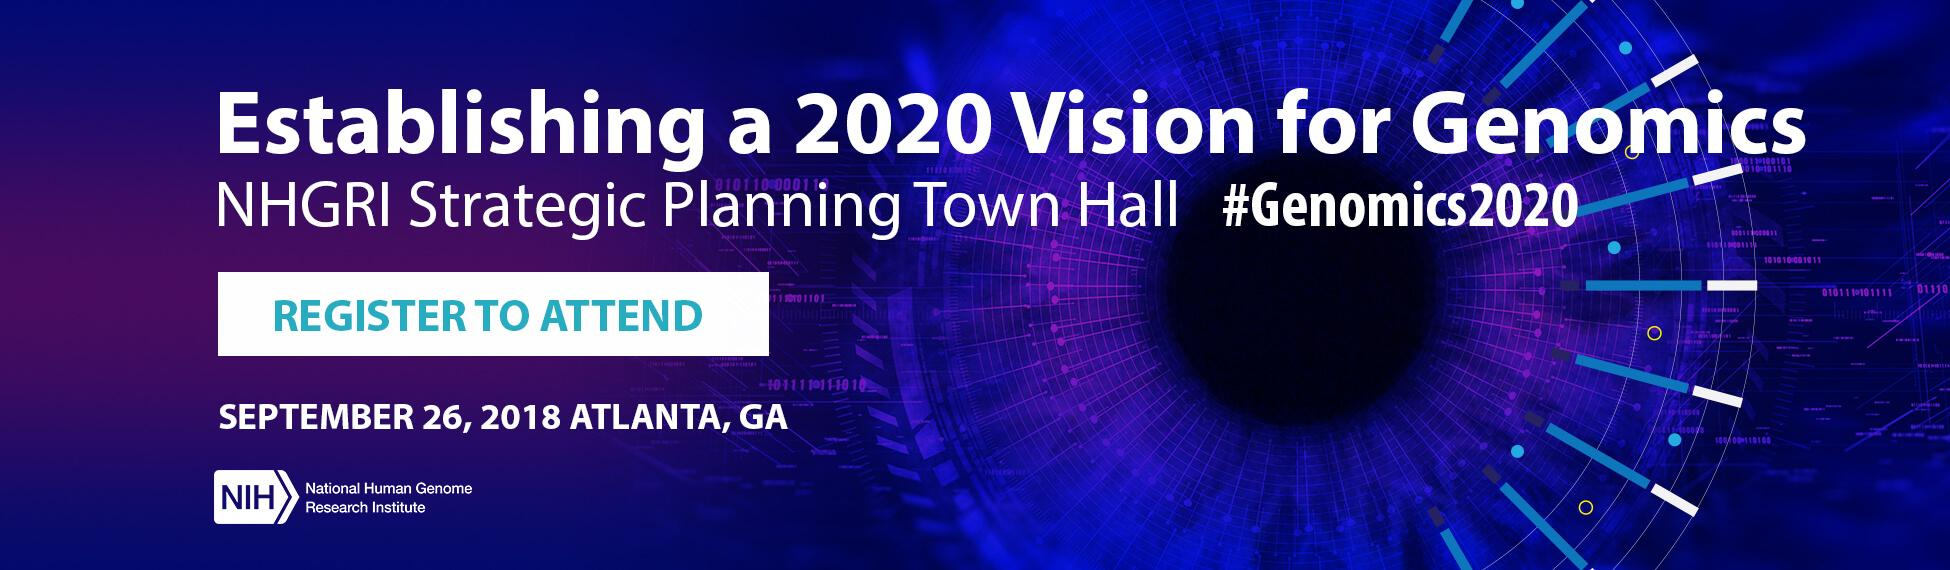 Establishing a 2020 Vision for Genomics: Register to attend